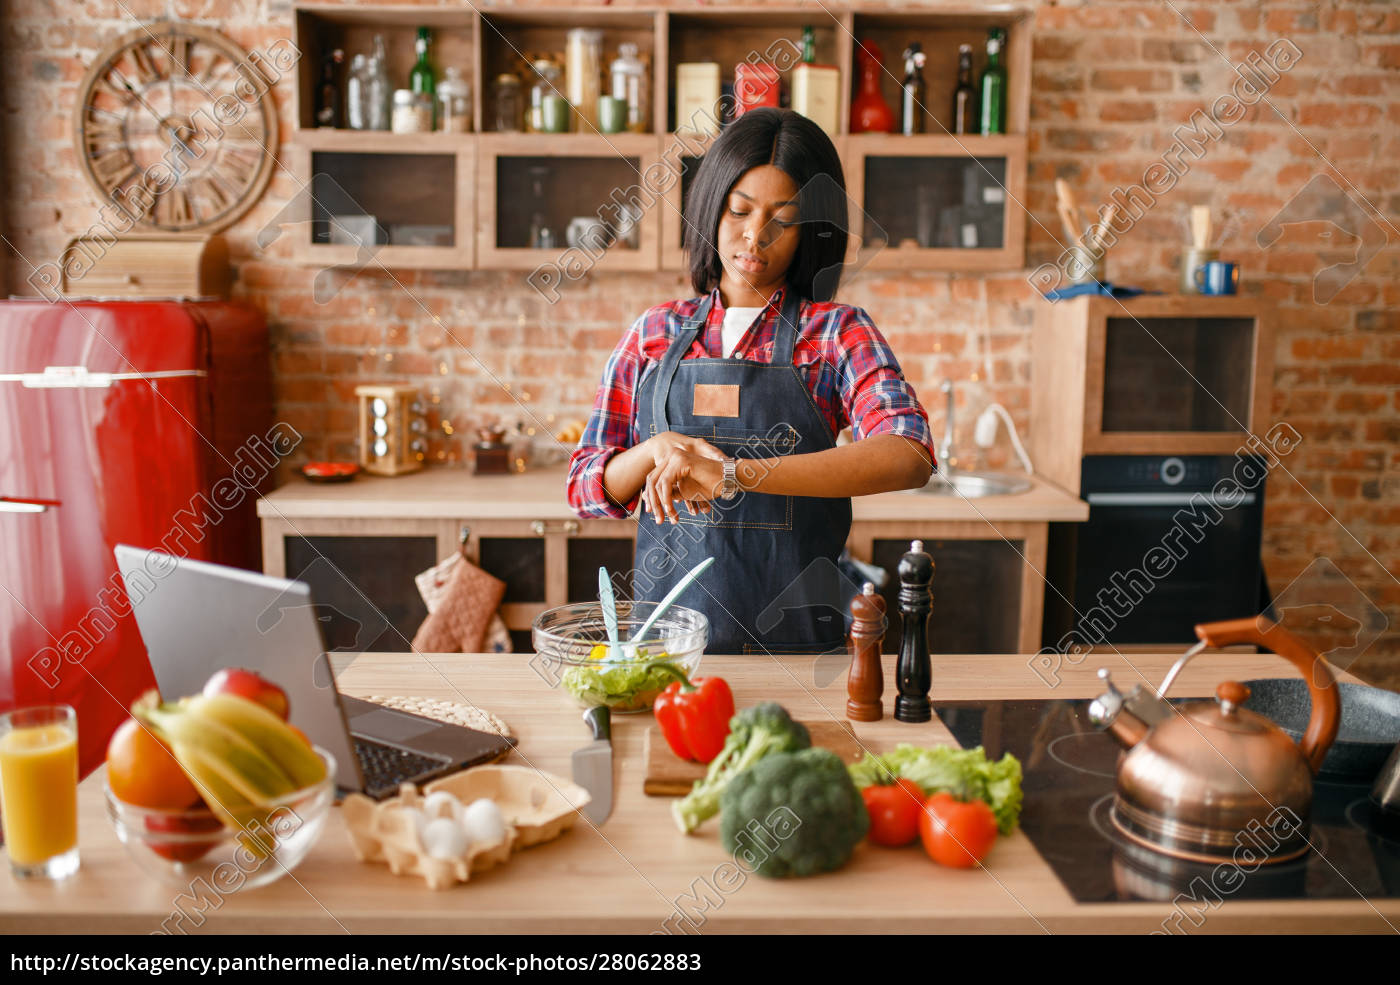 black, woman, in, apron, cooking, healthy - 28062883